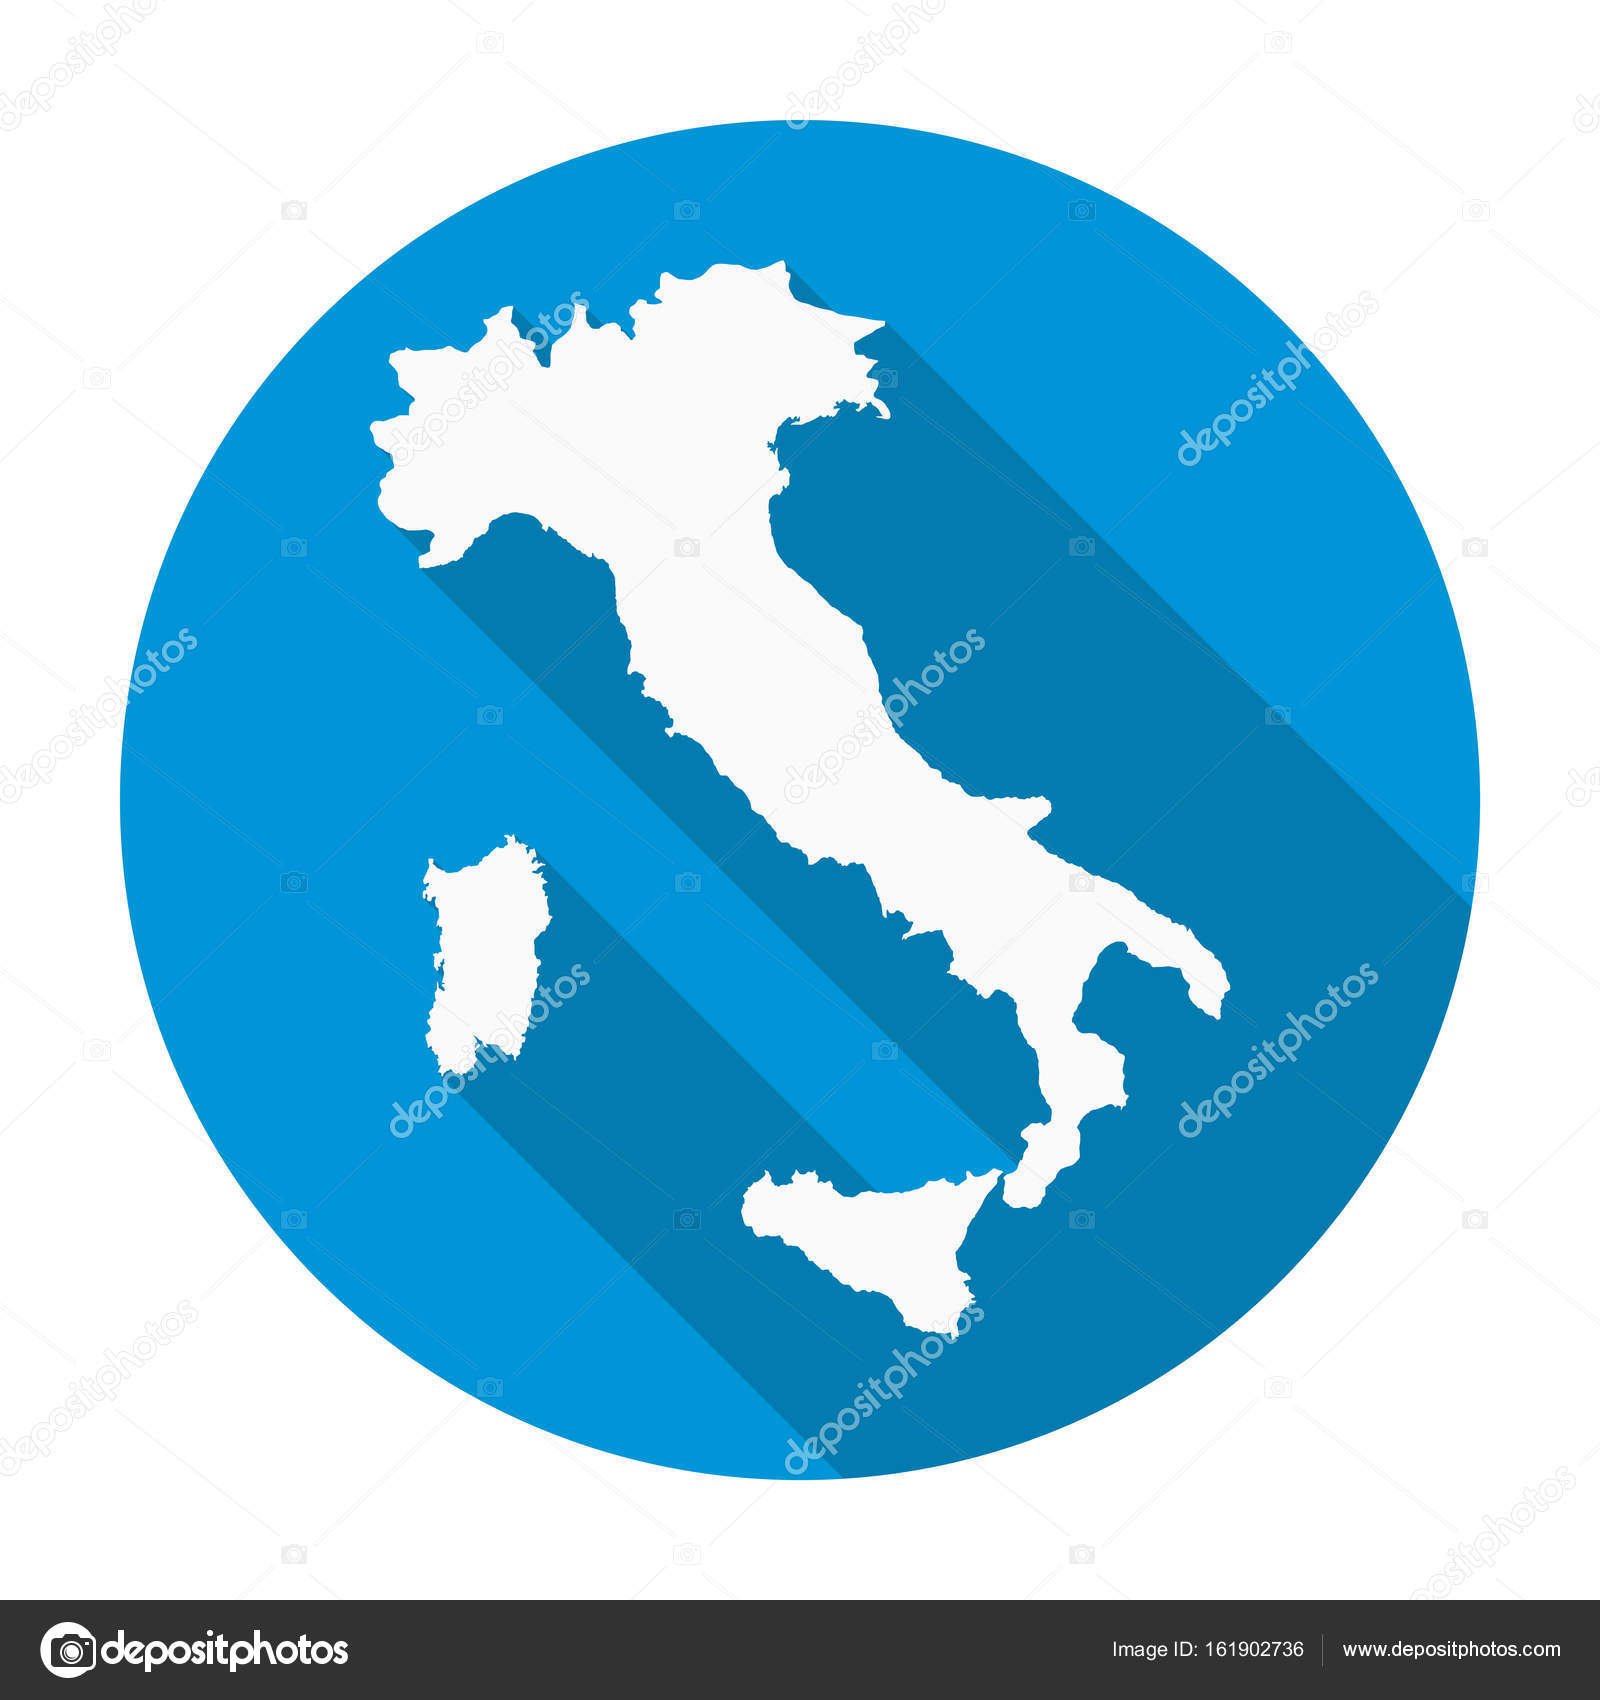 Italy map flat icon stock vector nirodesign 161902736 italy map flat icon stock vector gumiabroncs Image collections